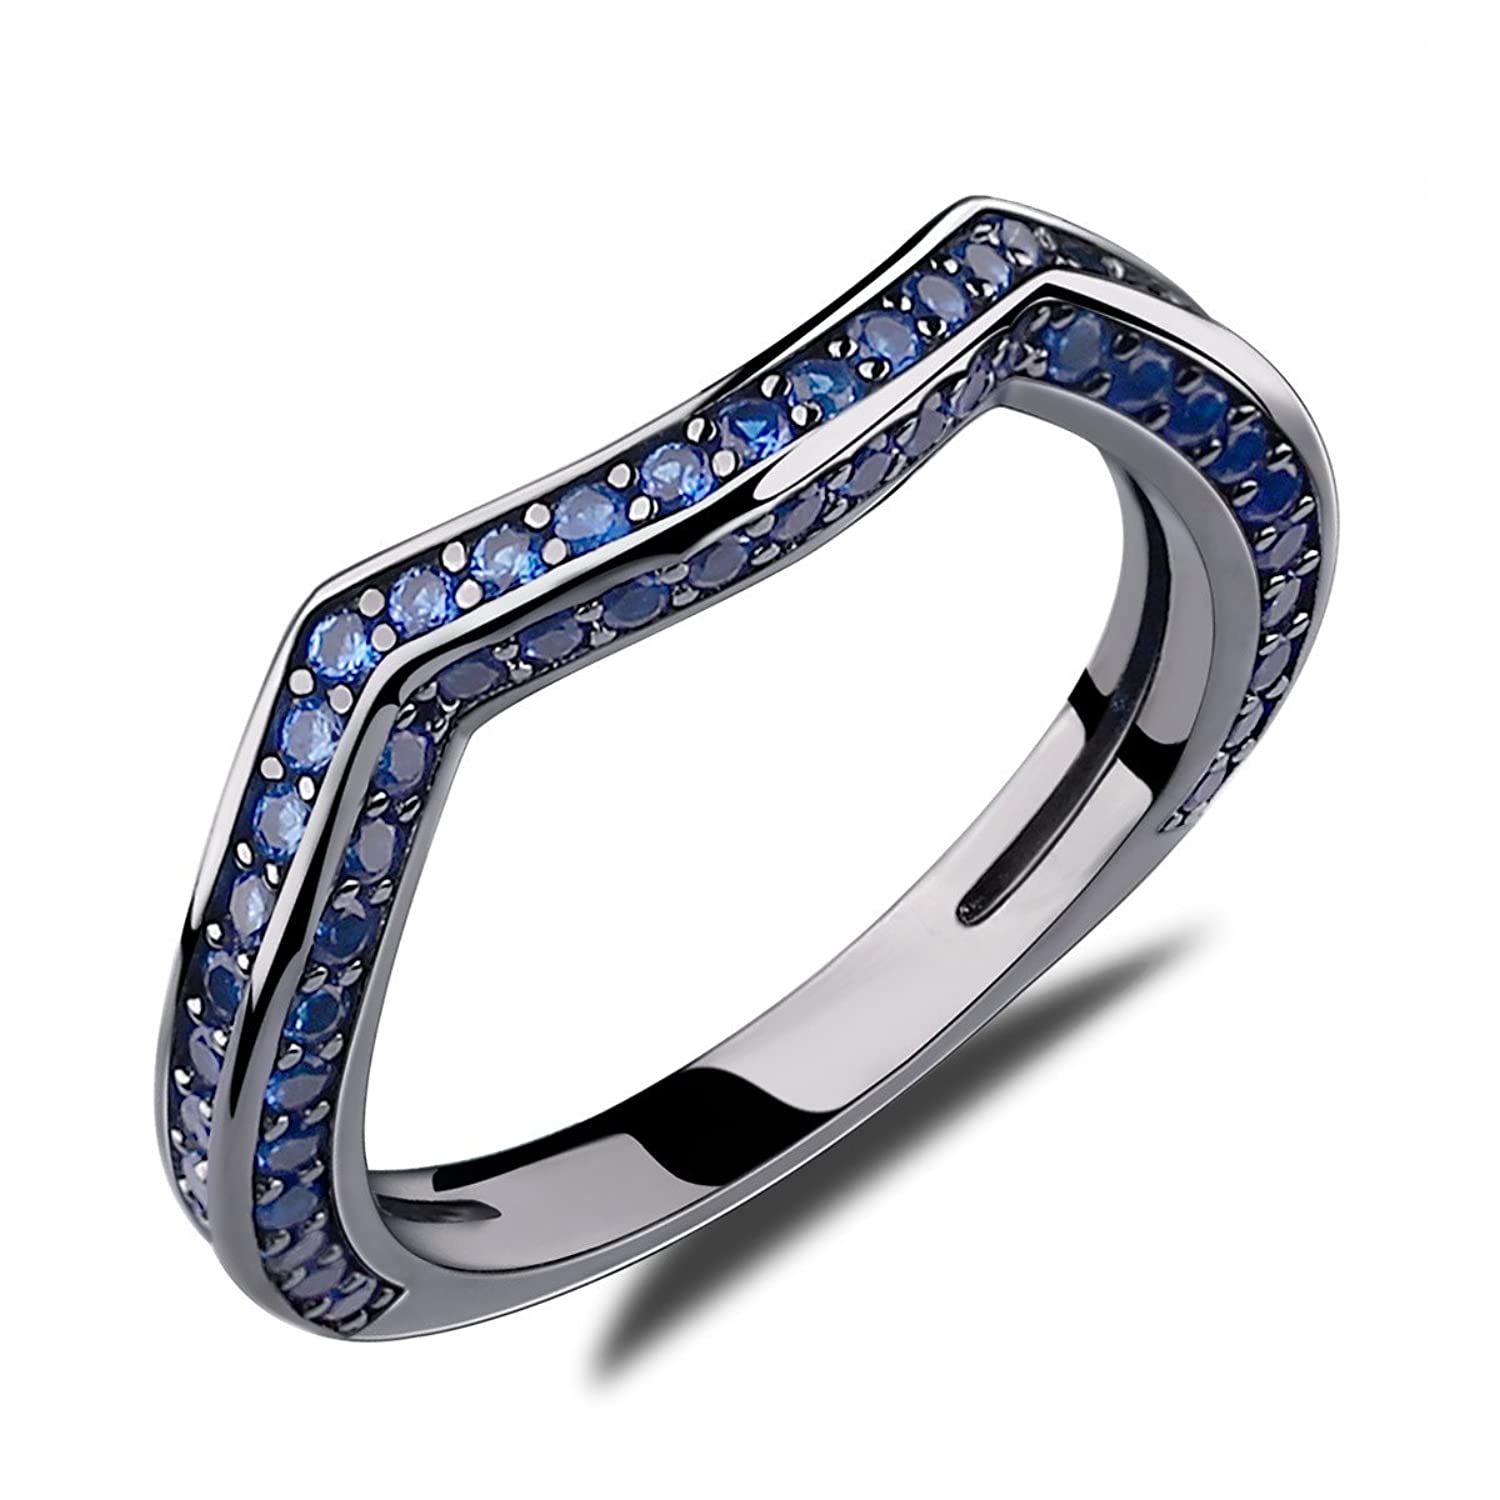 bands band sapphire for sapphires a ring graff diamond cut emerald eternity and wedding diamonds collections her